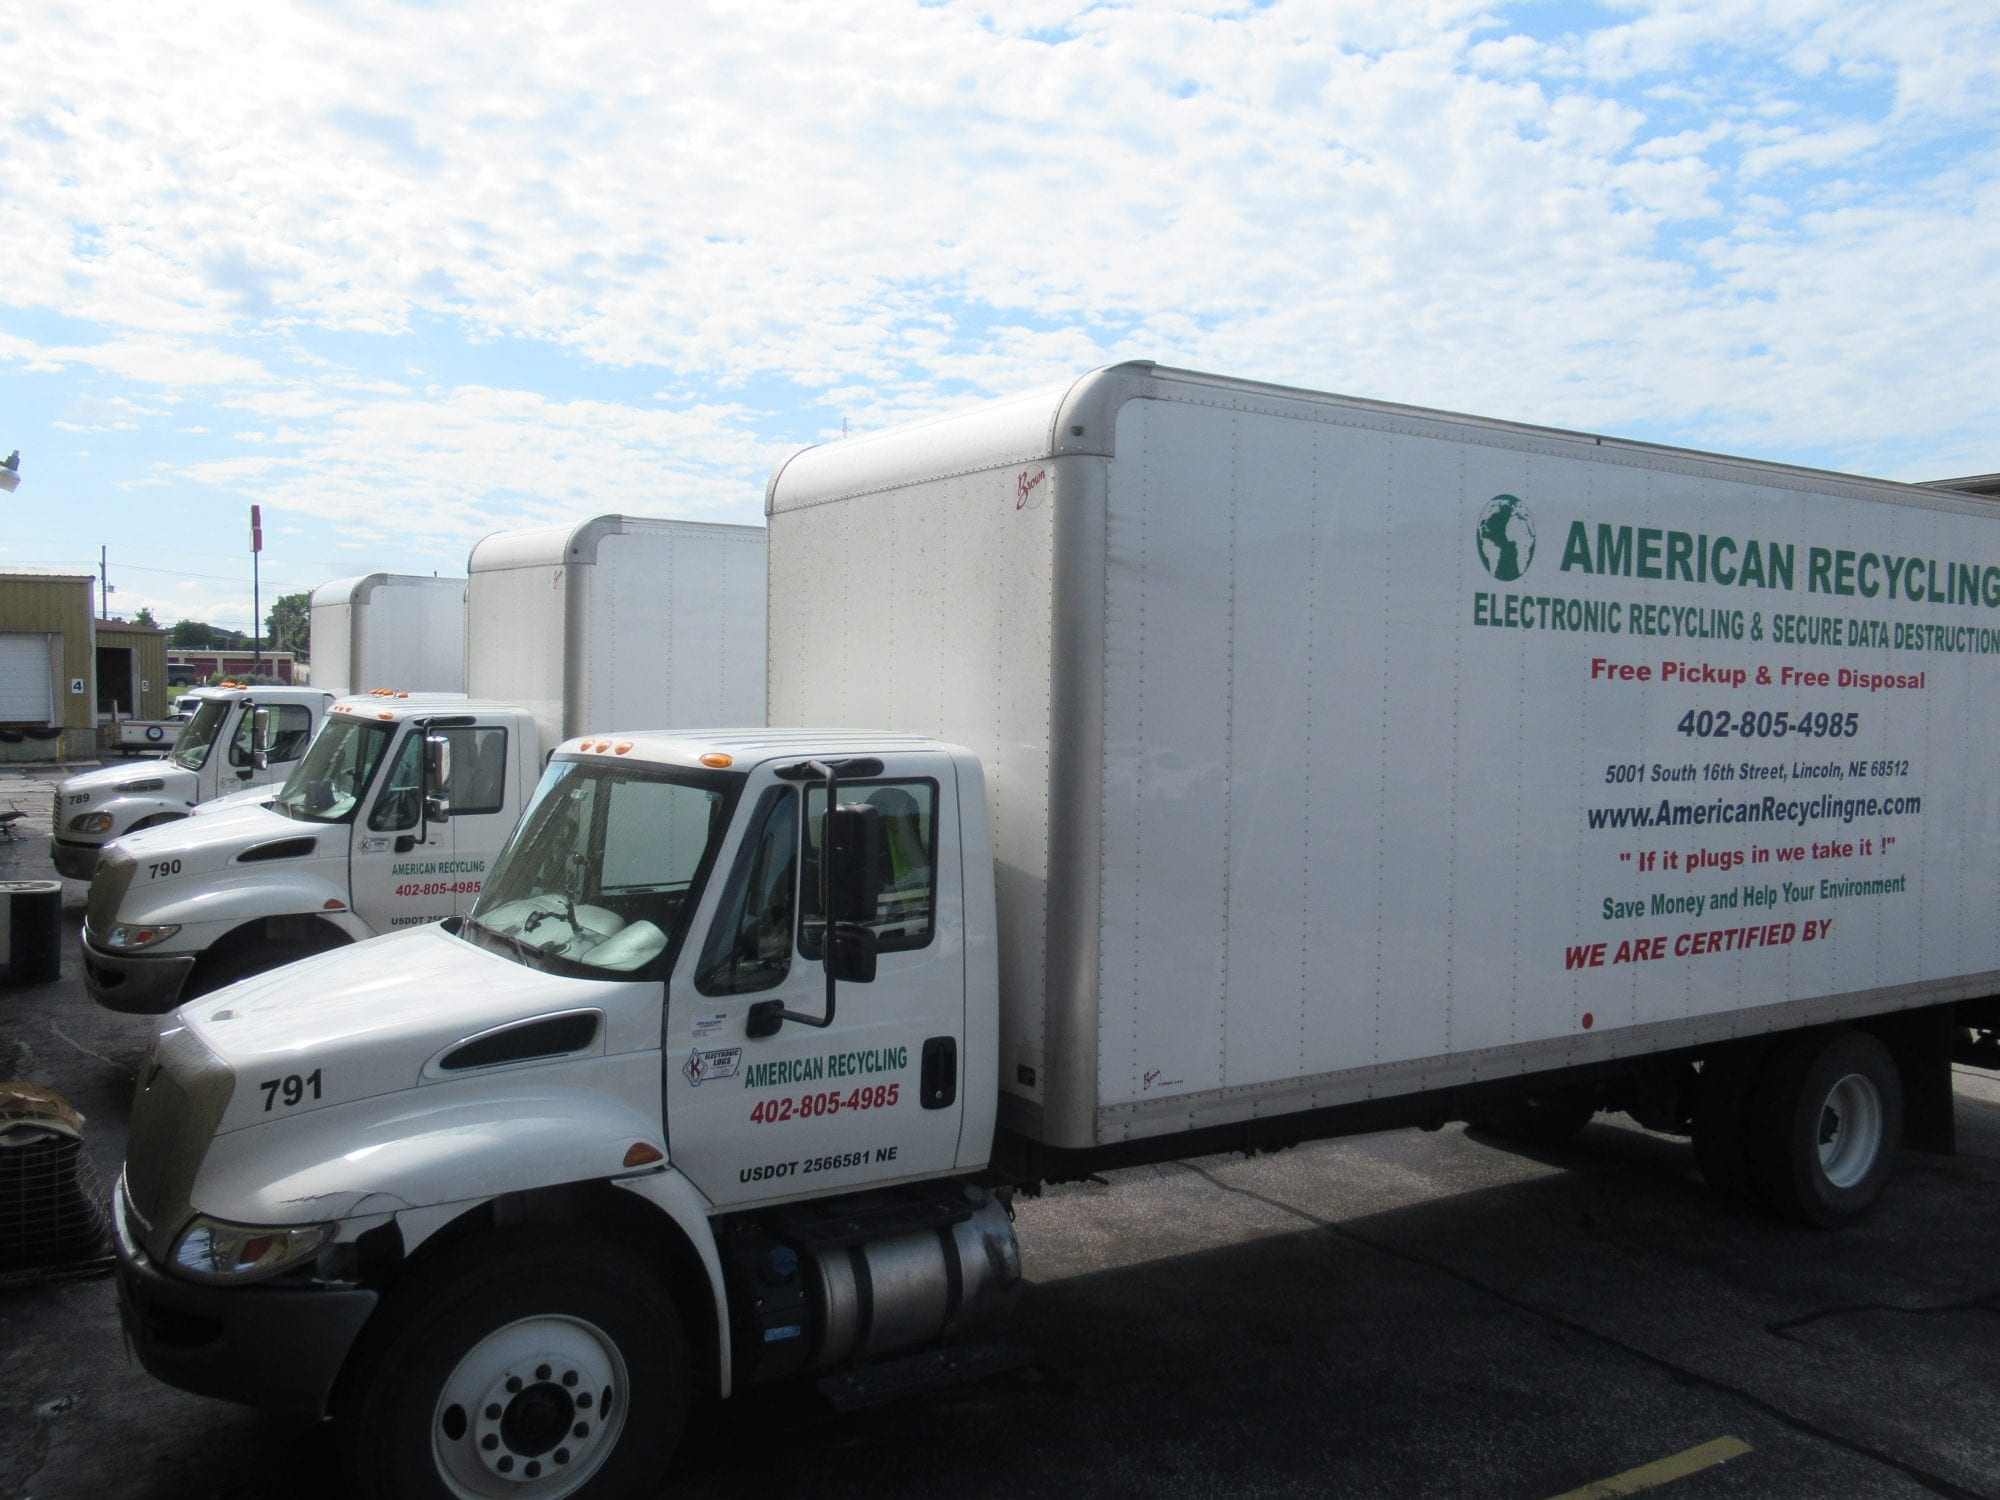 American Recycling Pickup Service